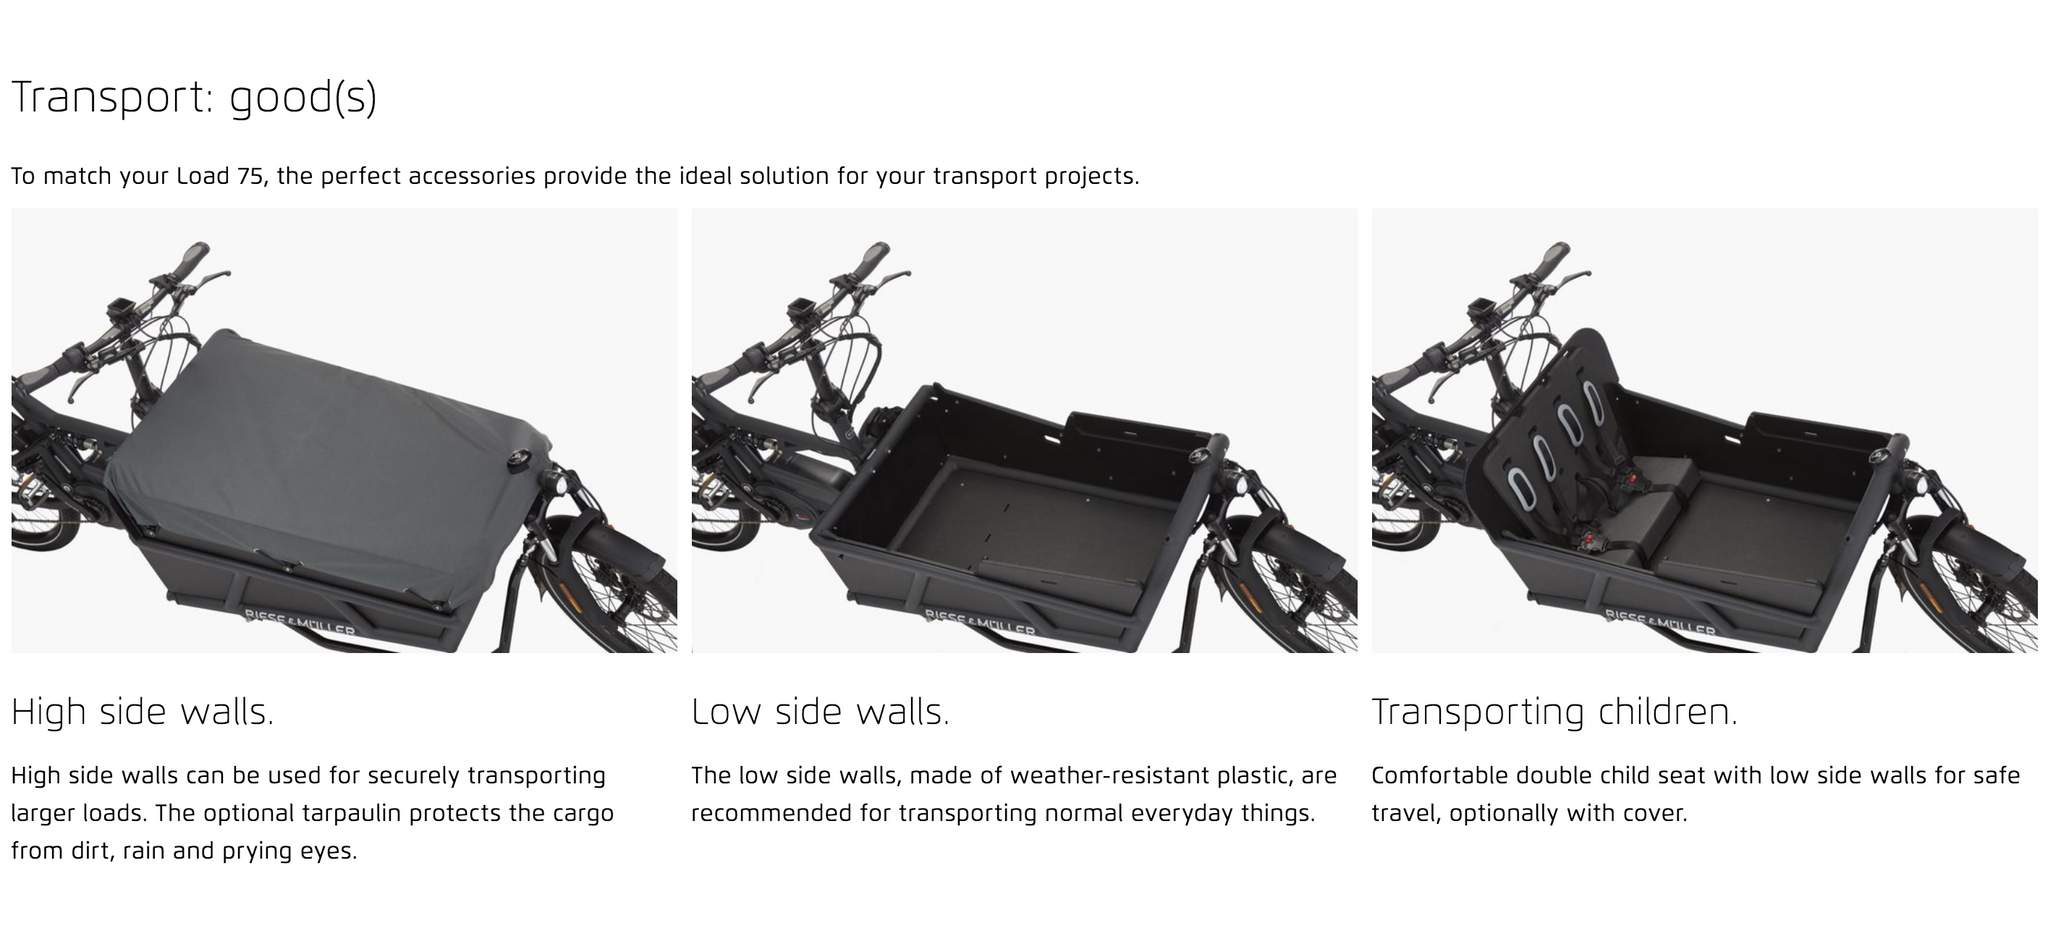 Transport: good(s) To match your Load 75, the perfect accessories provide the ideal solution for your transport projects.